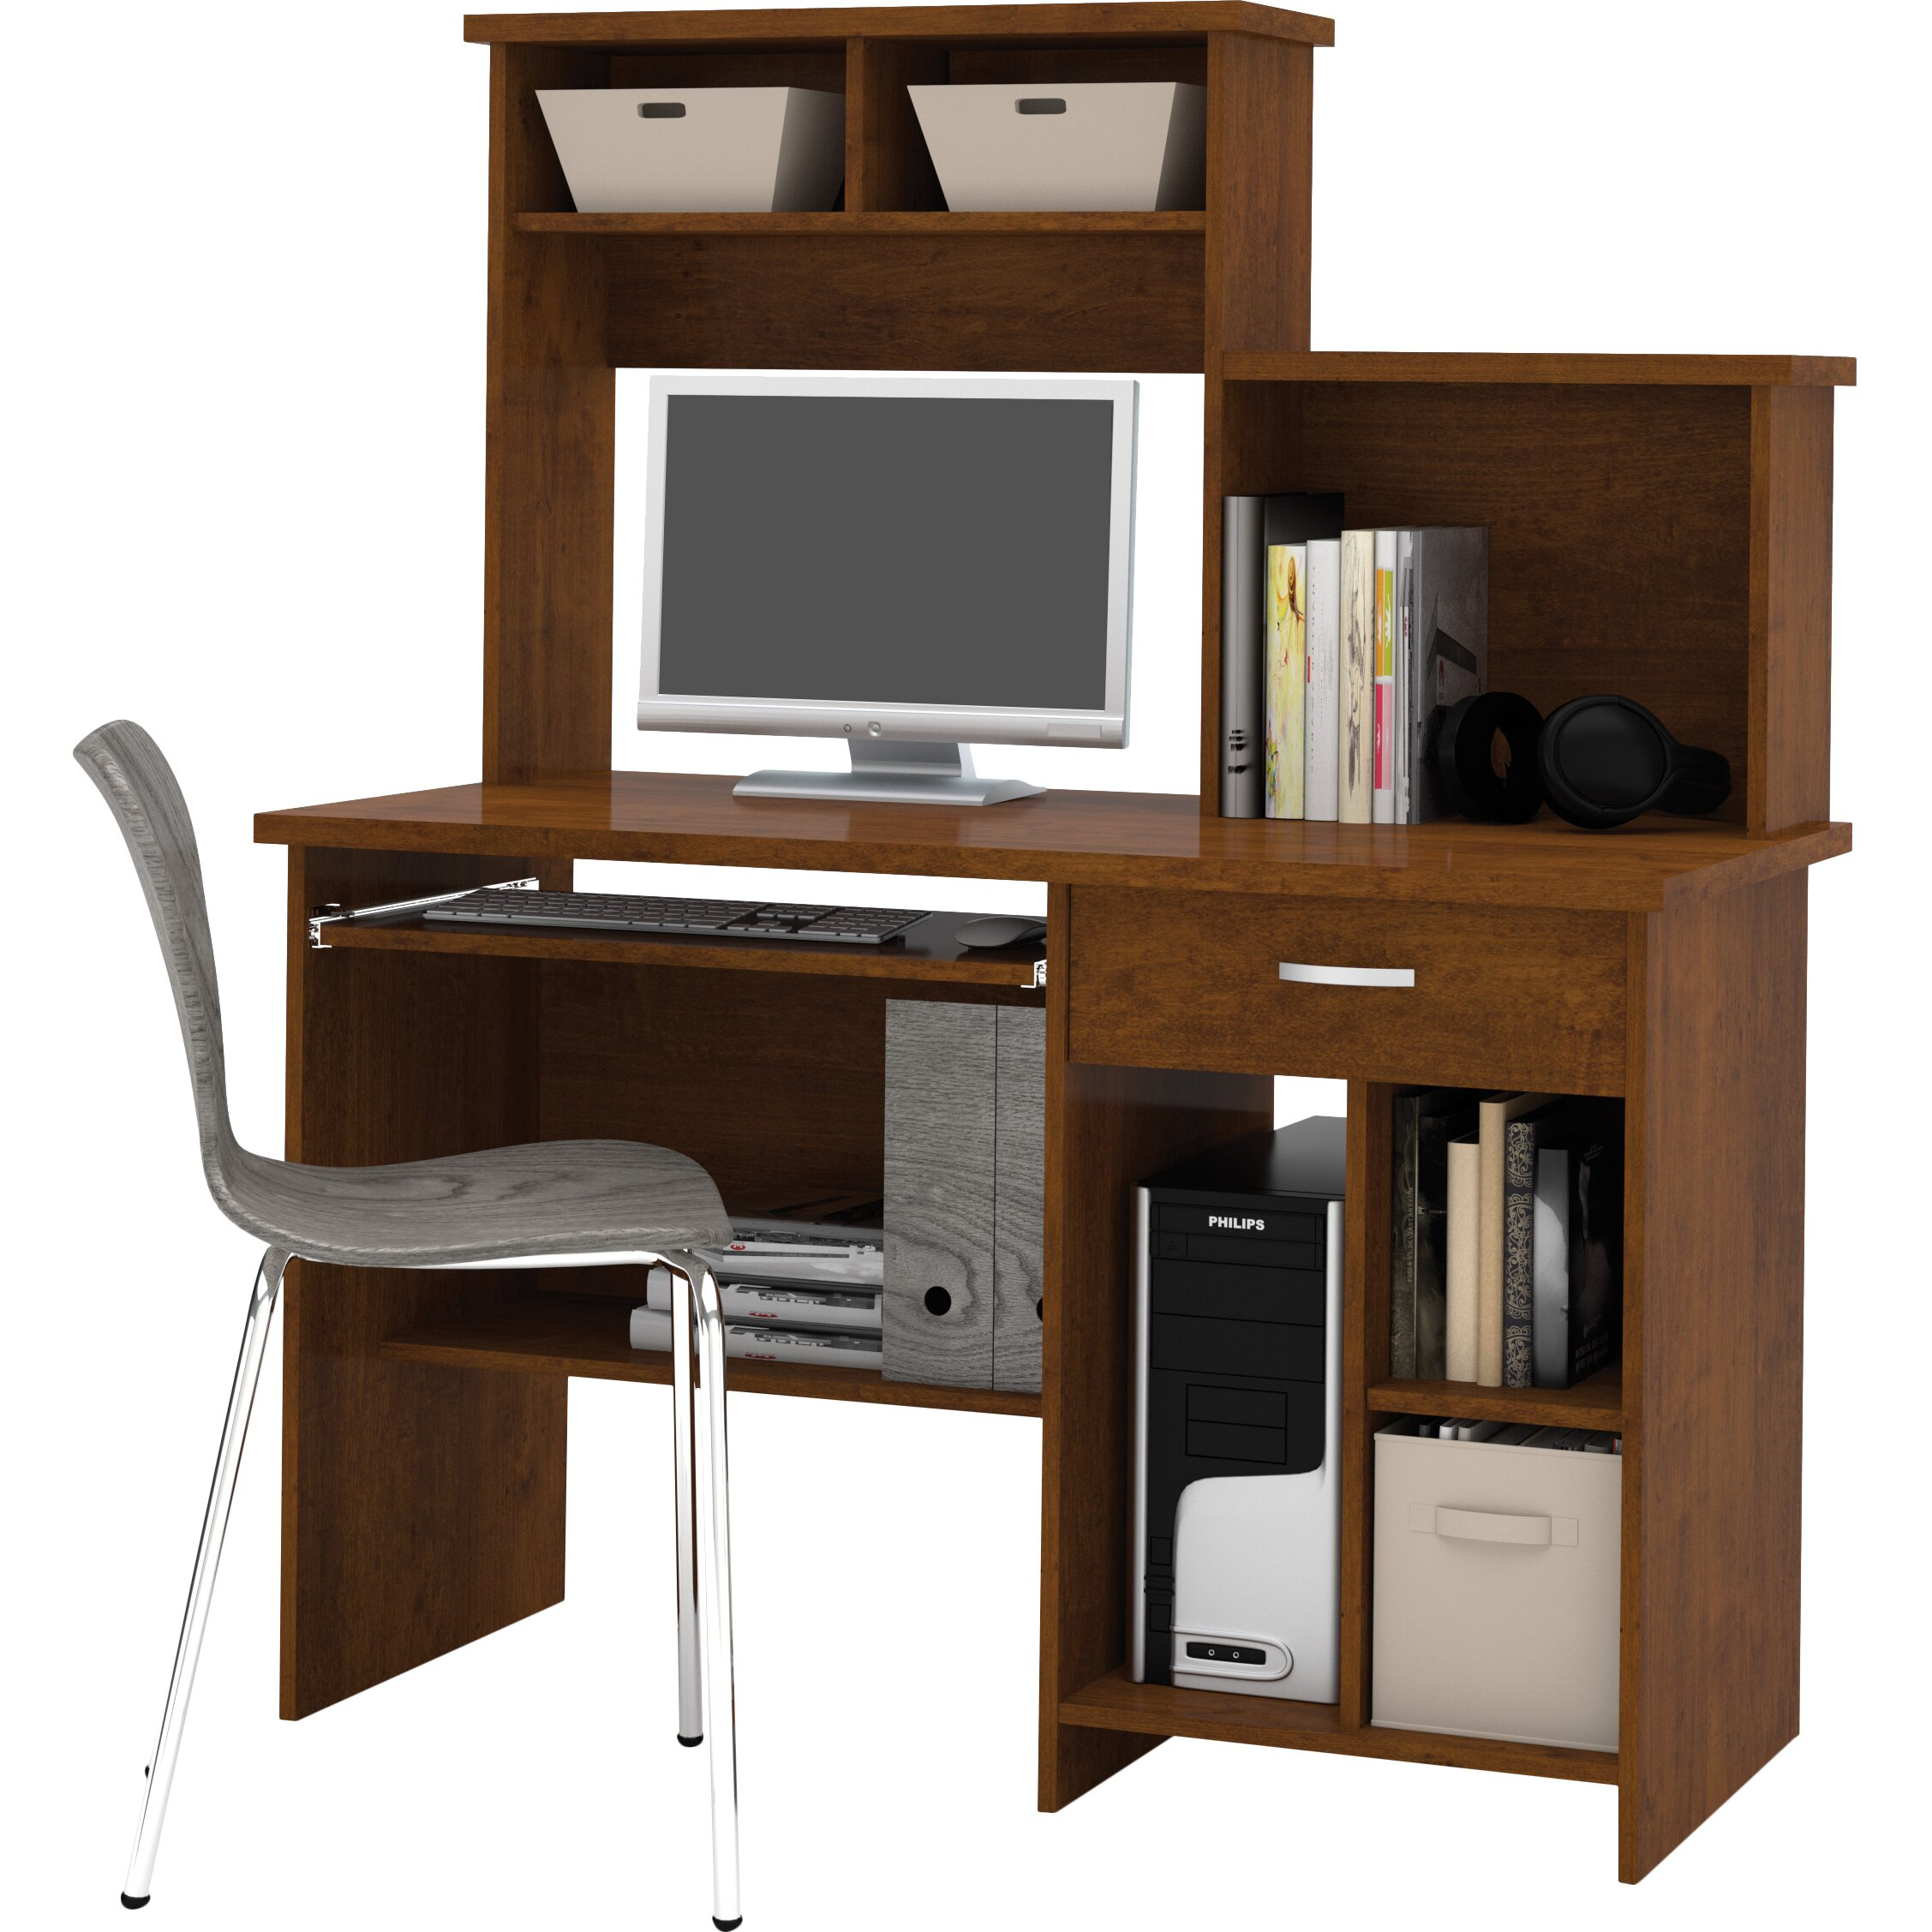 Awesome Leaning Shelf Bookcase With Computer Desk Office Furniture Home  Home